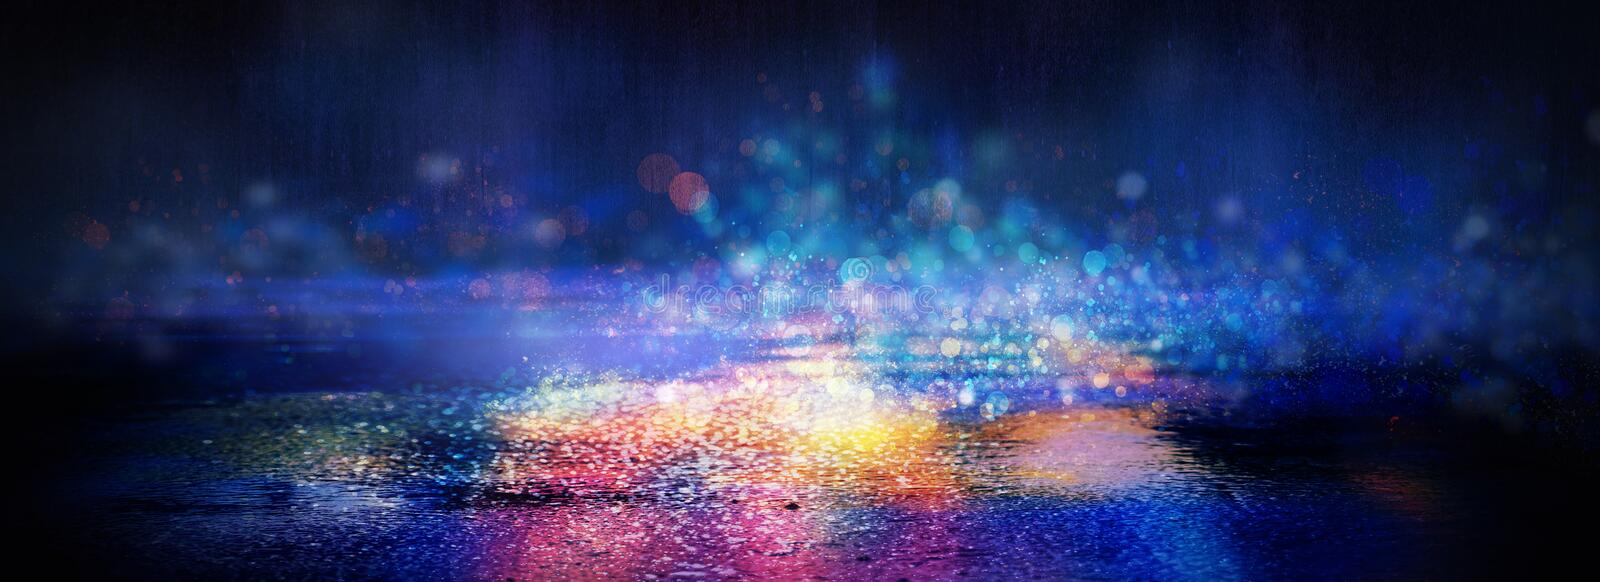 Wet asphalt after rain, reflection of neon lights in puddles. The lights of the night, neon city. Abstract dark background. Wet asphalt after rain, reflection stock image